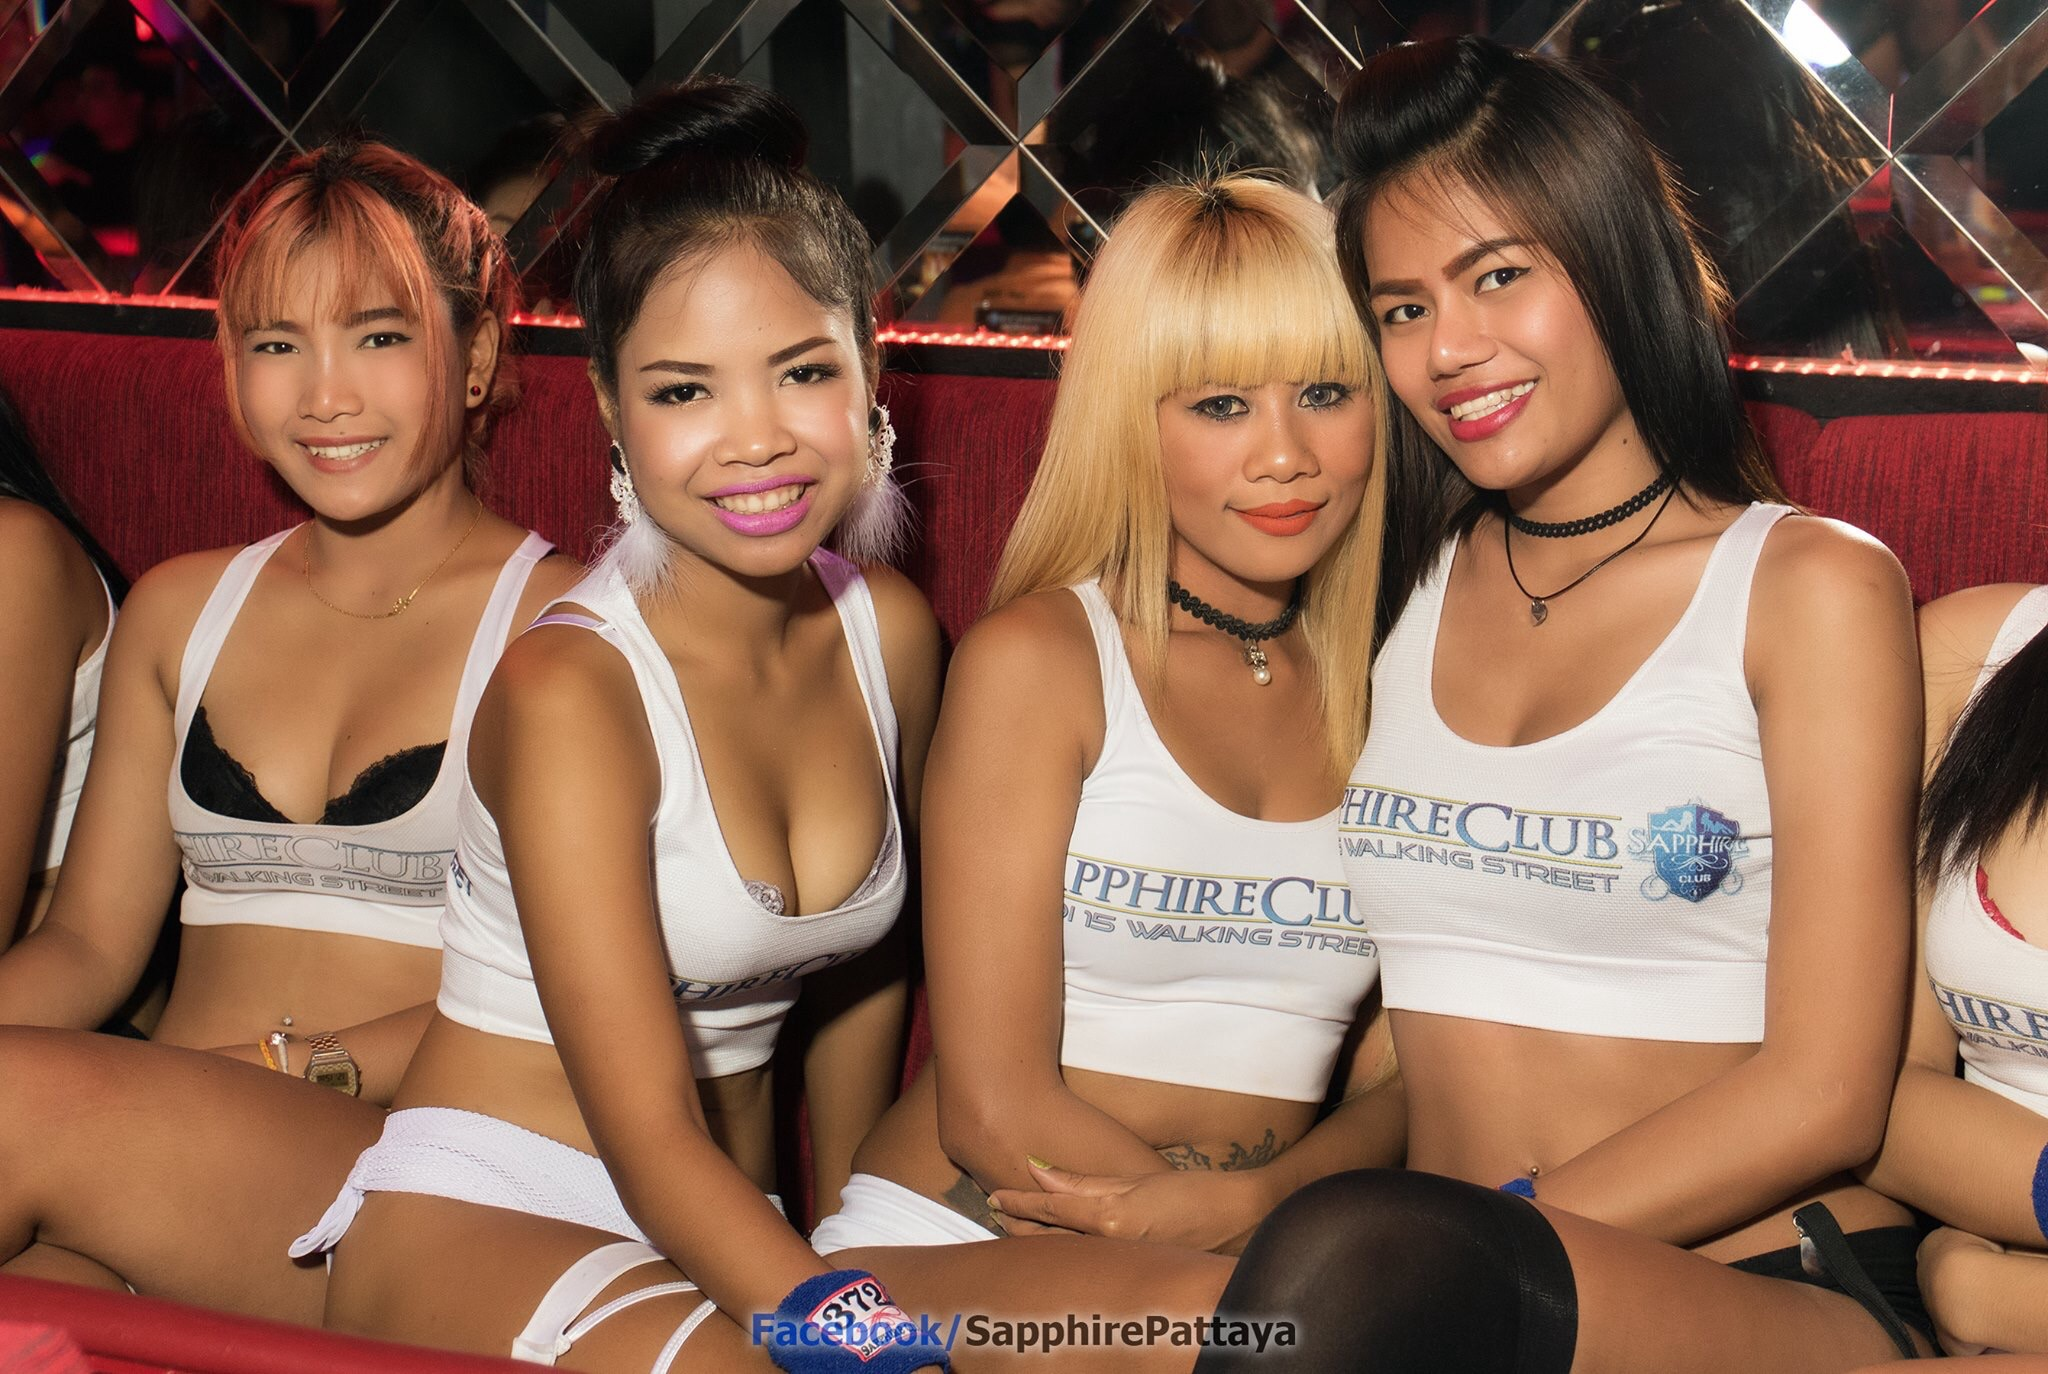 Pattaya bars and gogo bars